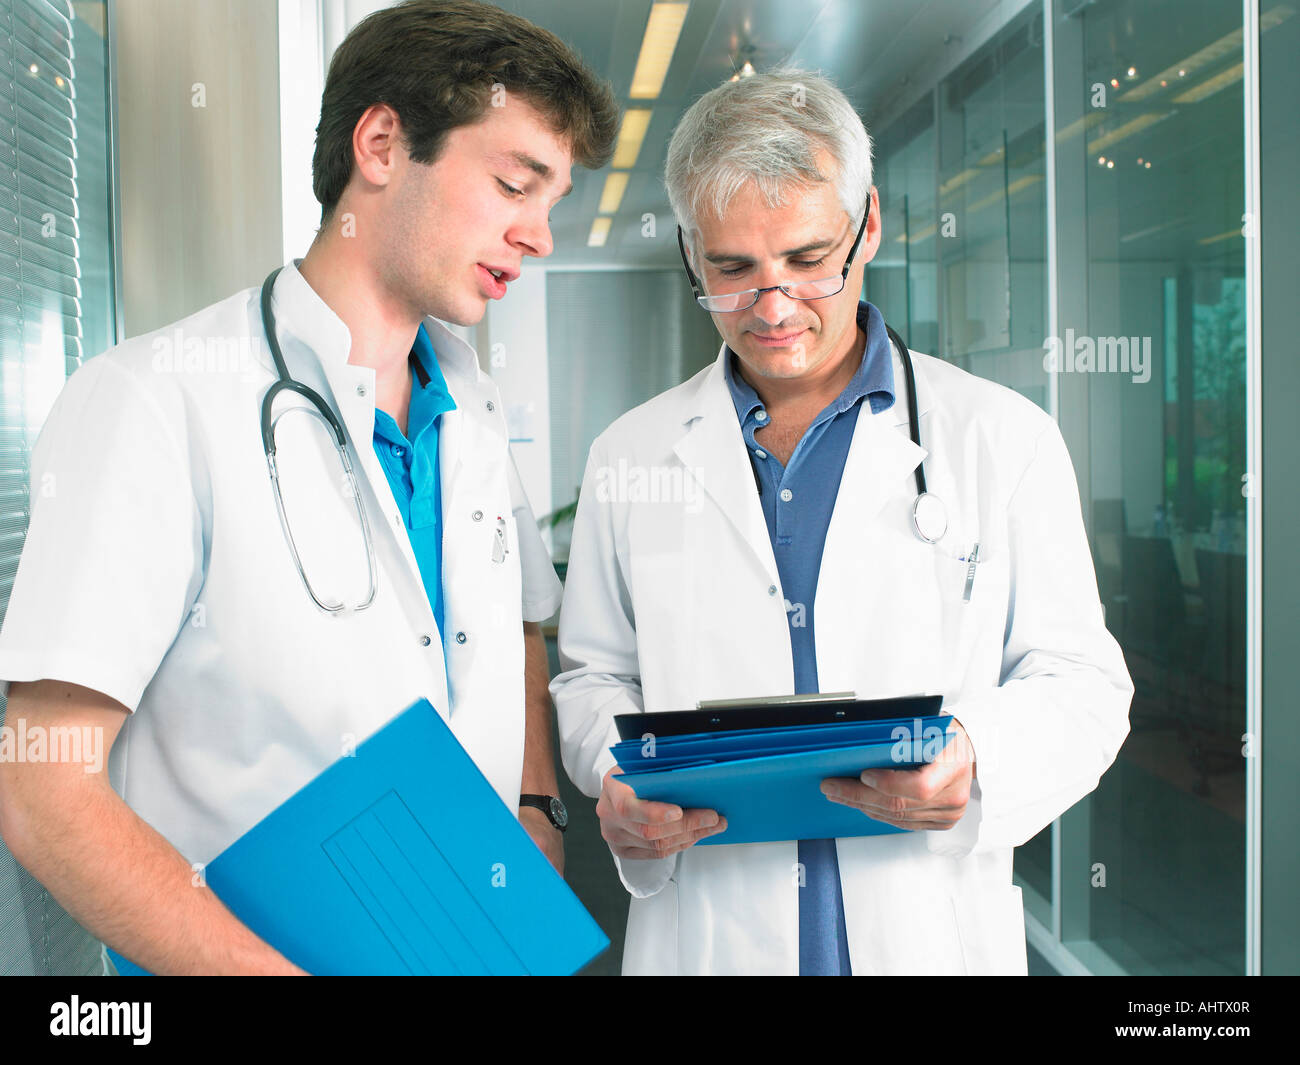 Mature doctor and young doctor in discussion in a lobby of a hospital. - Stock Image